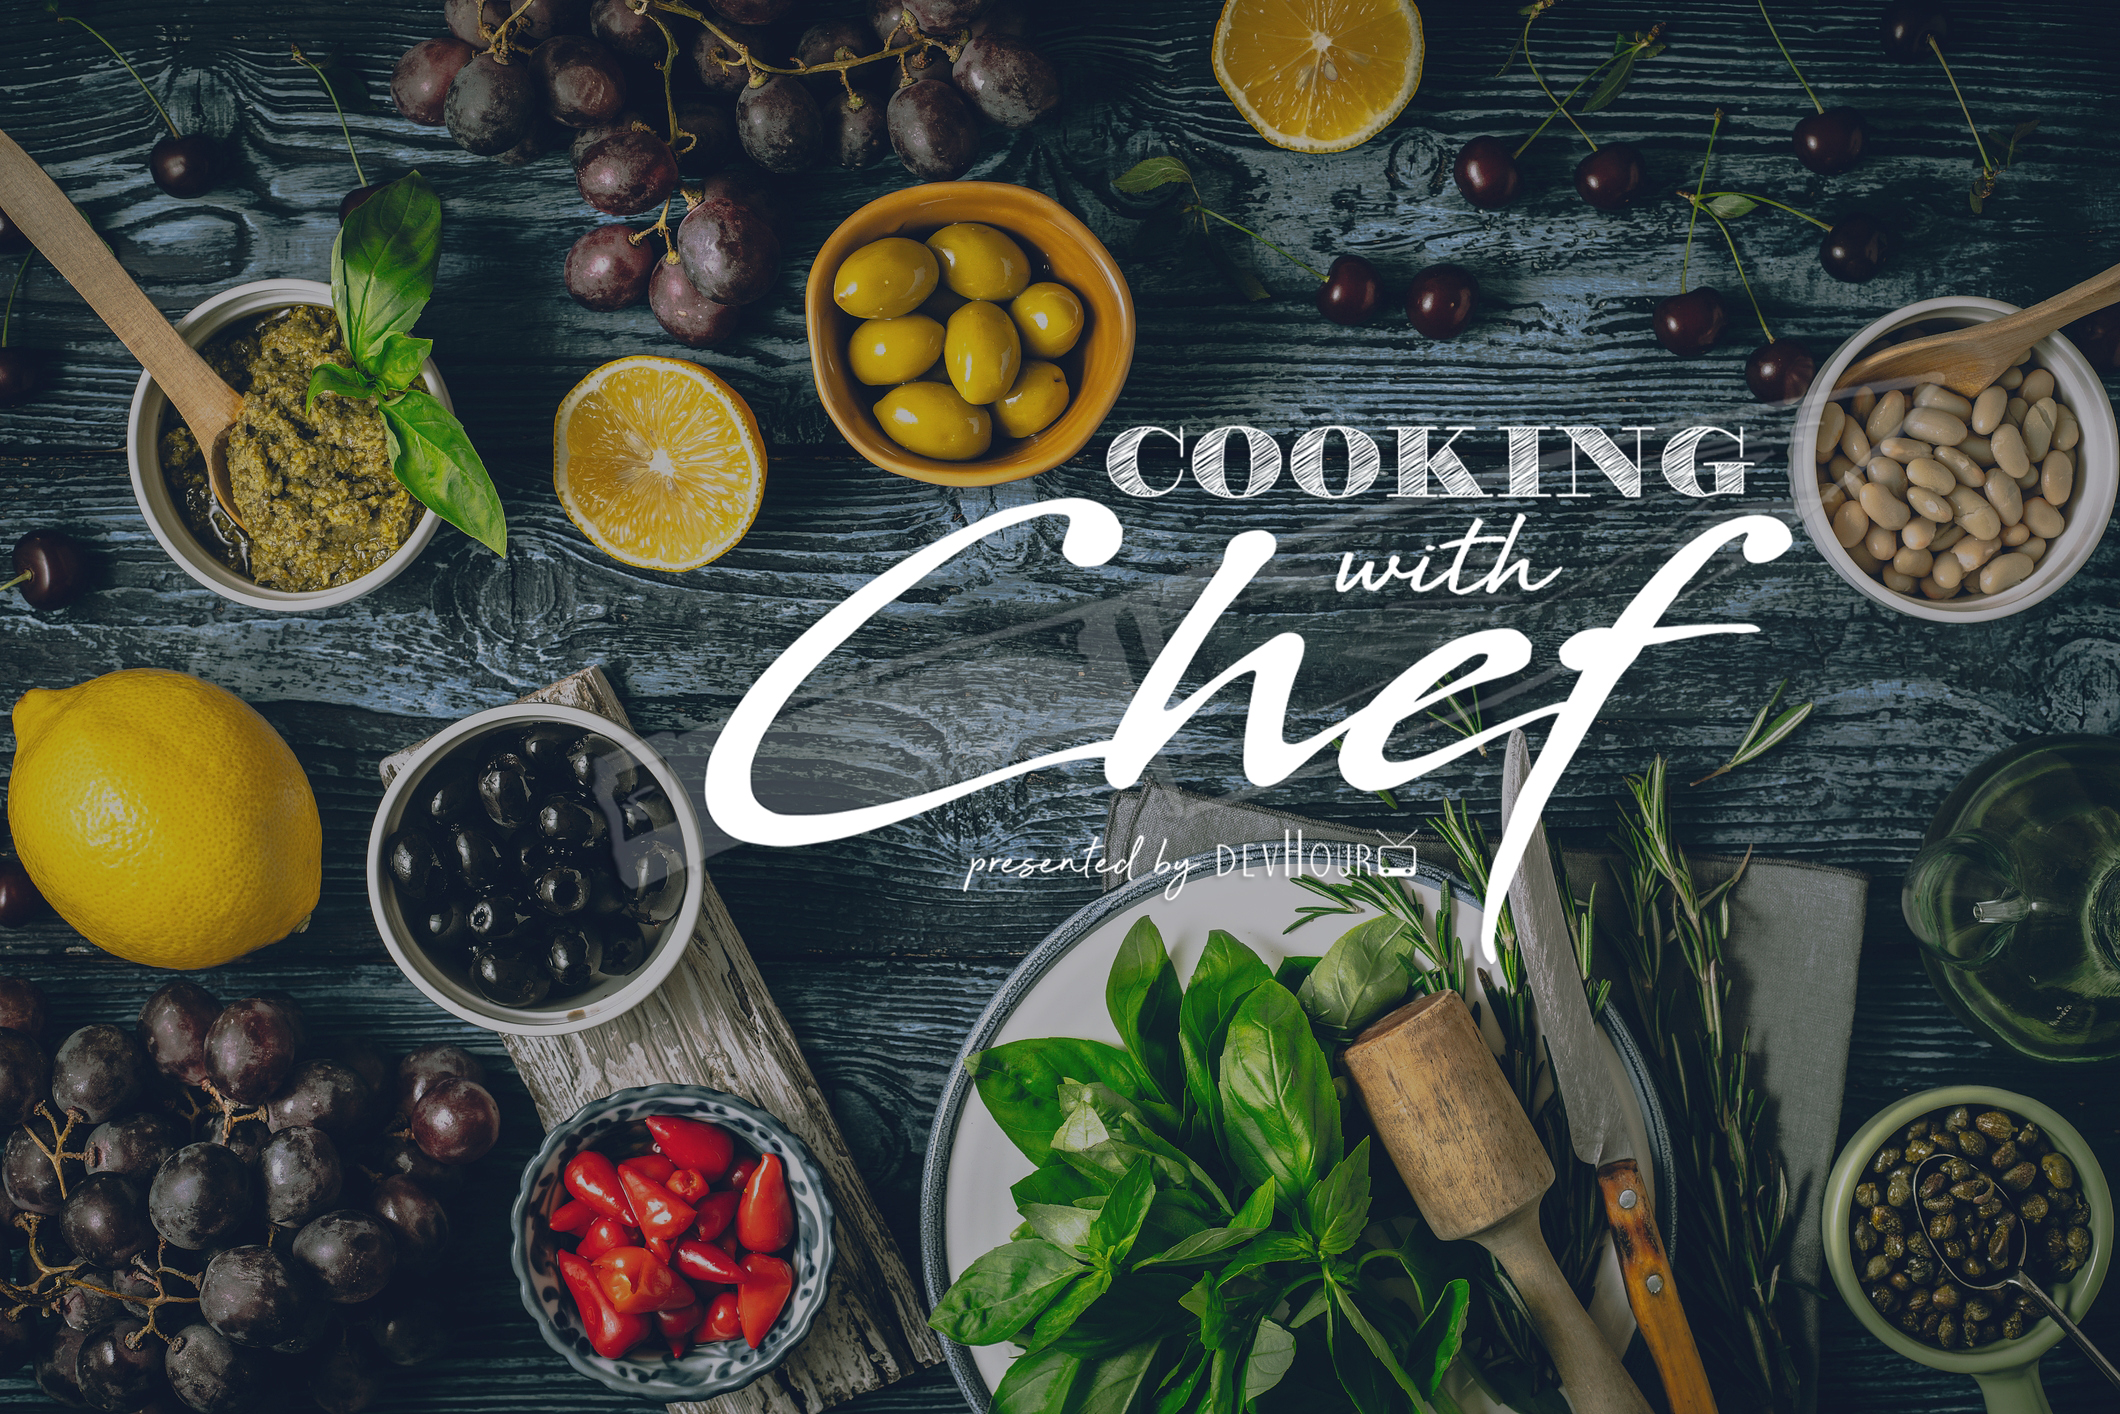 devHour - cooking with chef cover image